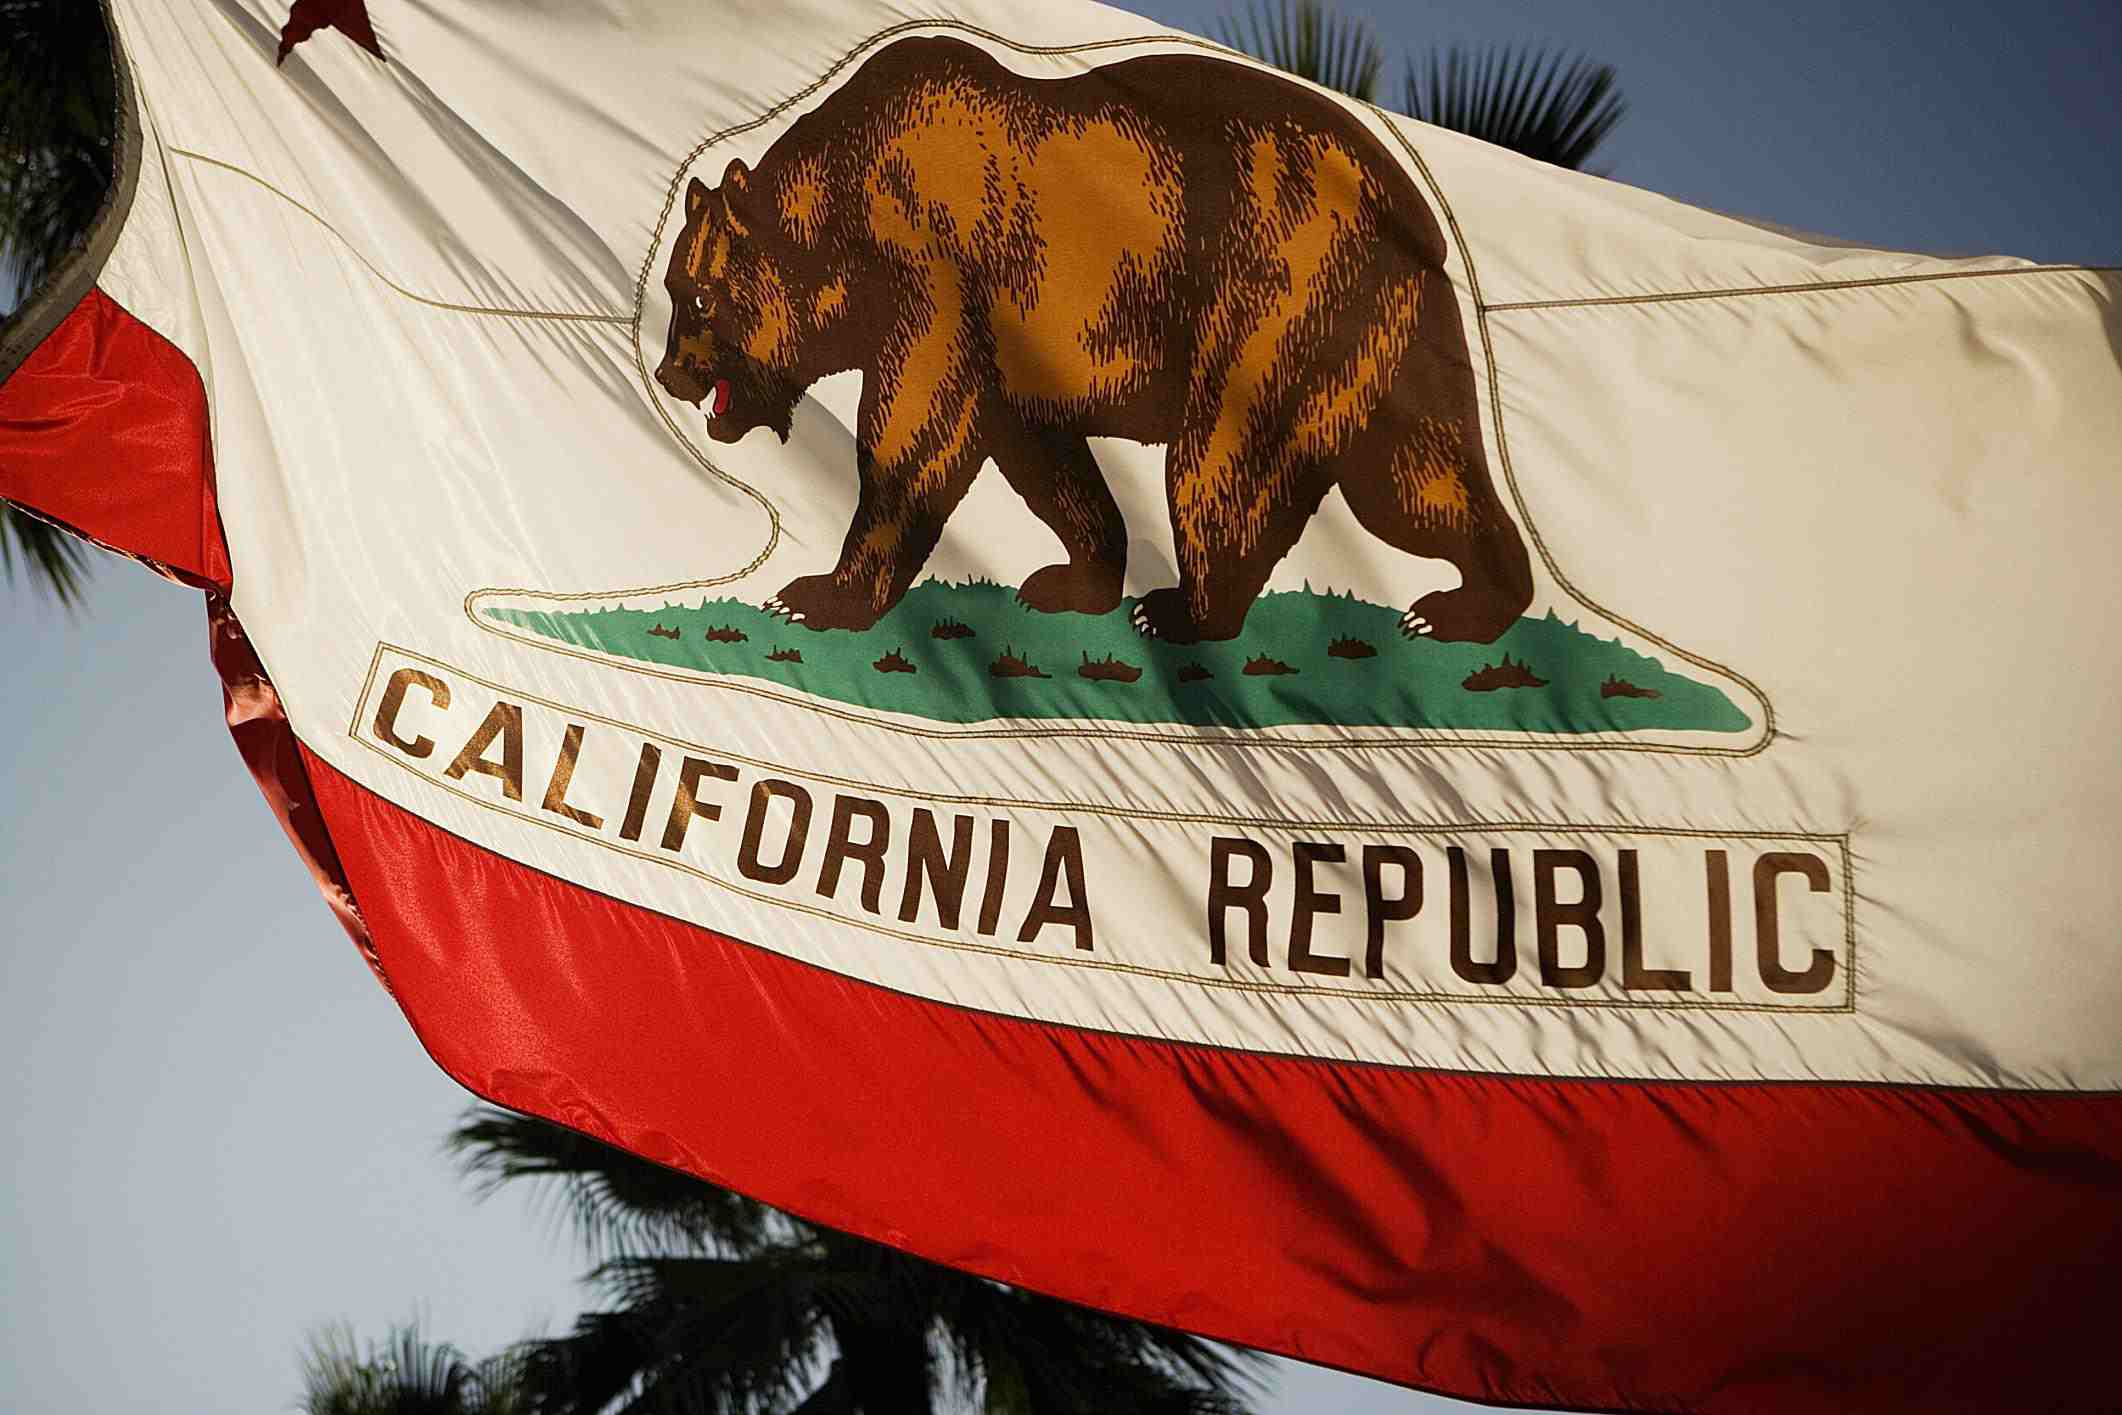 California flag - Glowimages - GettyImages-56134888